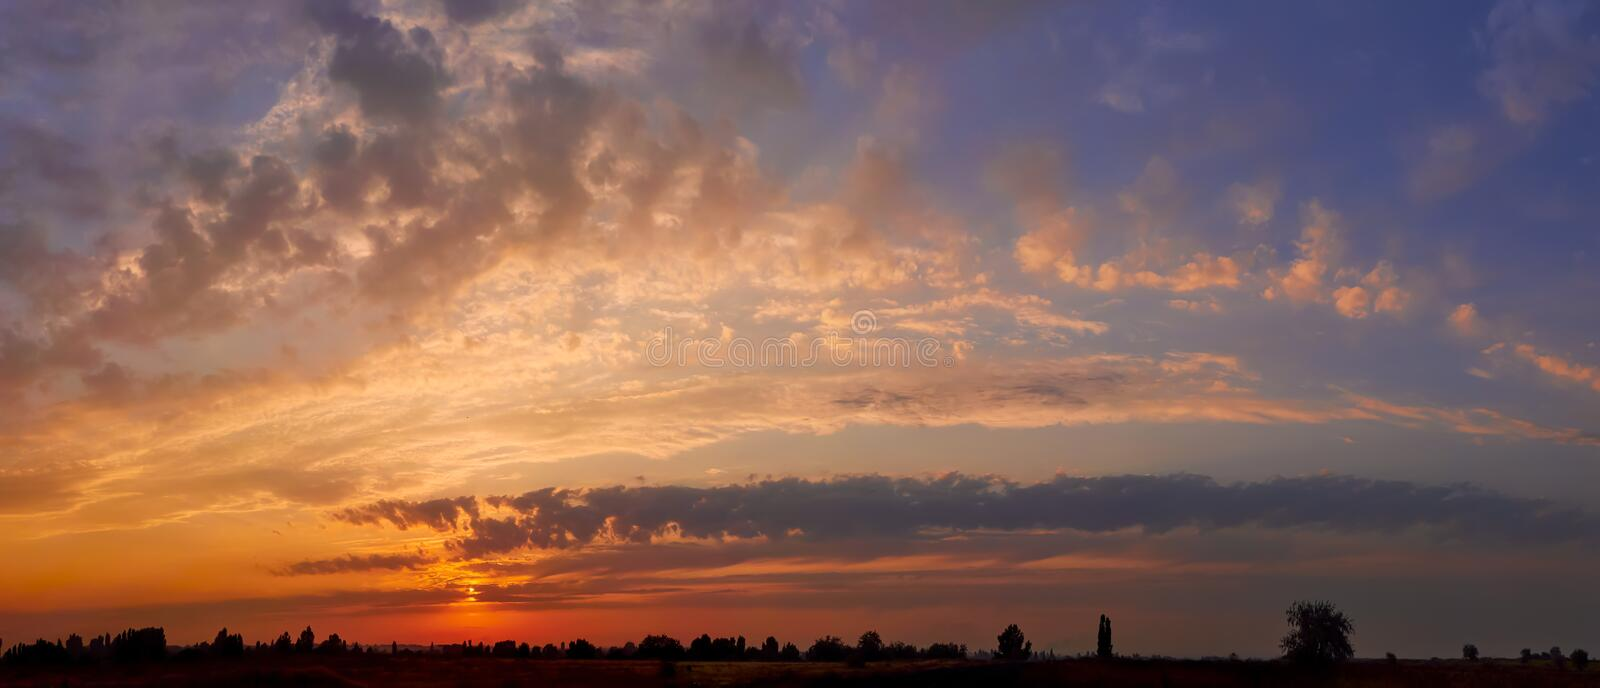 Bright sunlight through the clouds against a breathtaking evening sky at sunset. Panorama, natural composition stock photography